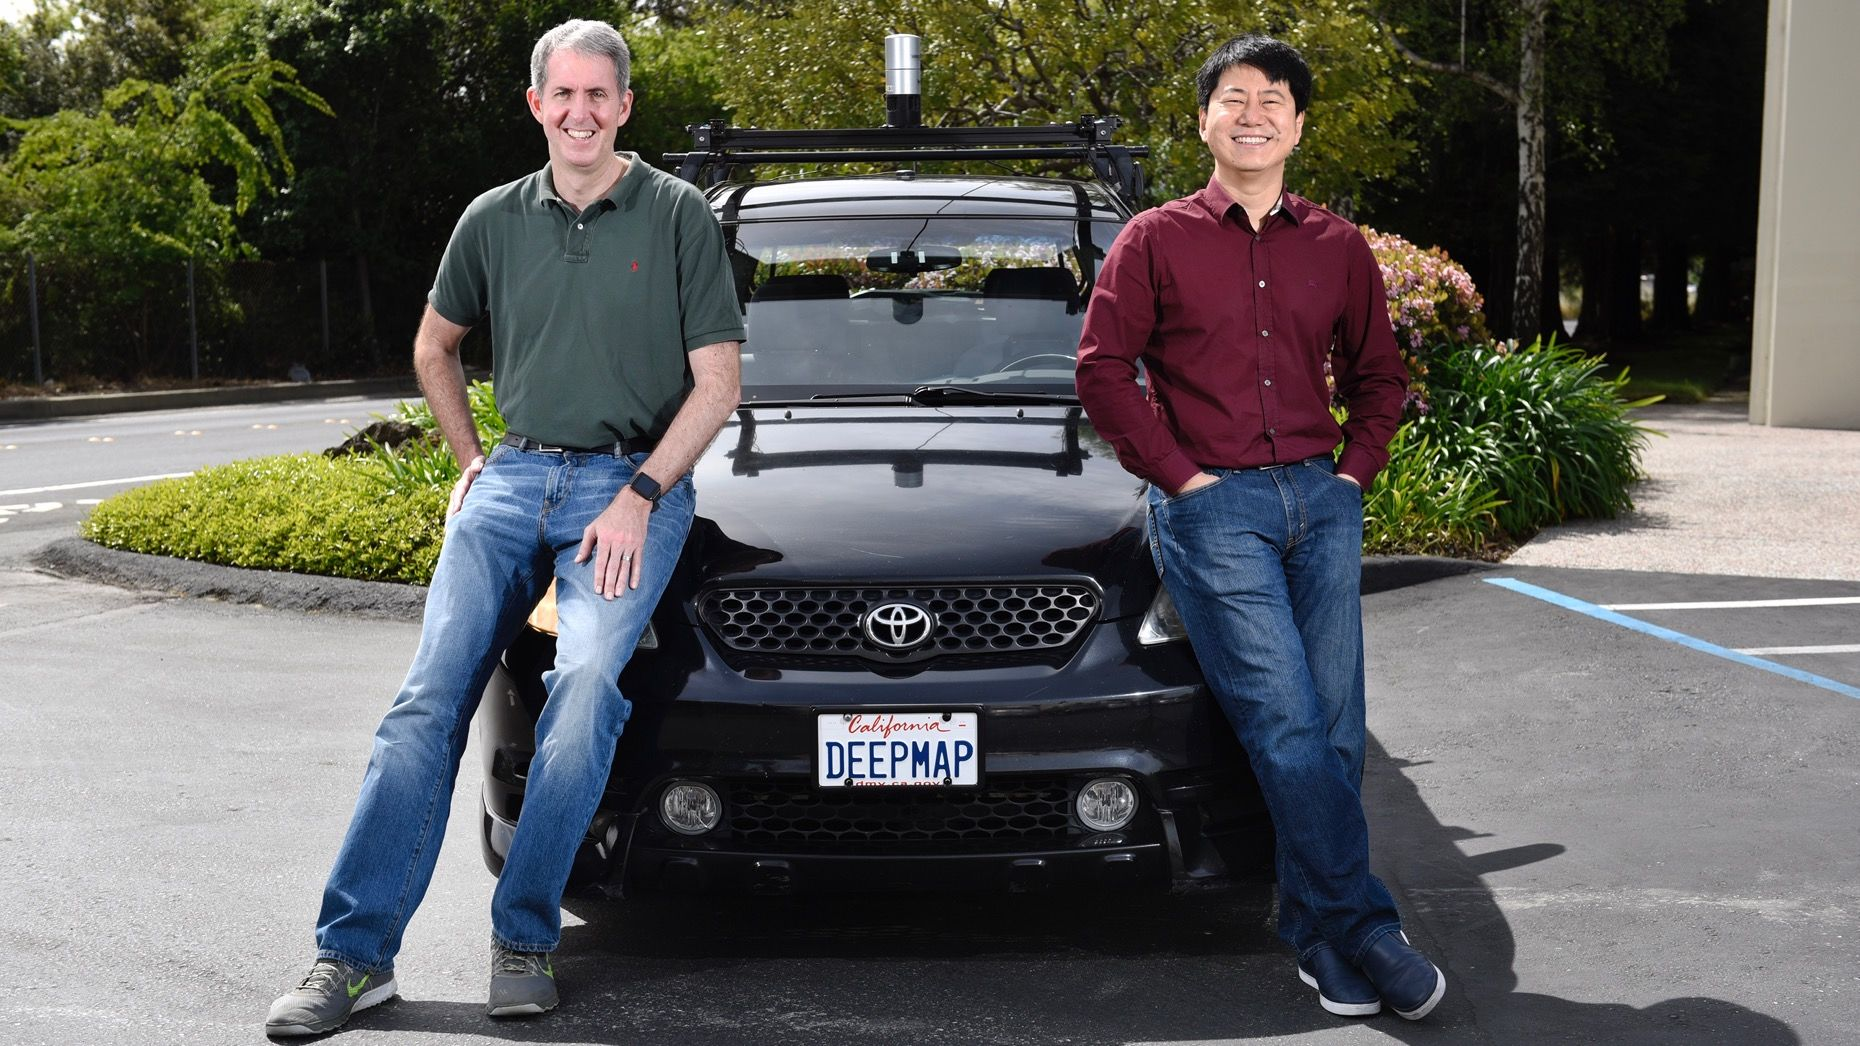 DeepMap co-founders Mark Wheeler, left, and James Wu. Photo: Bloomberg